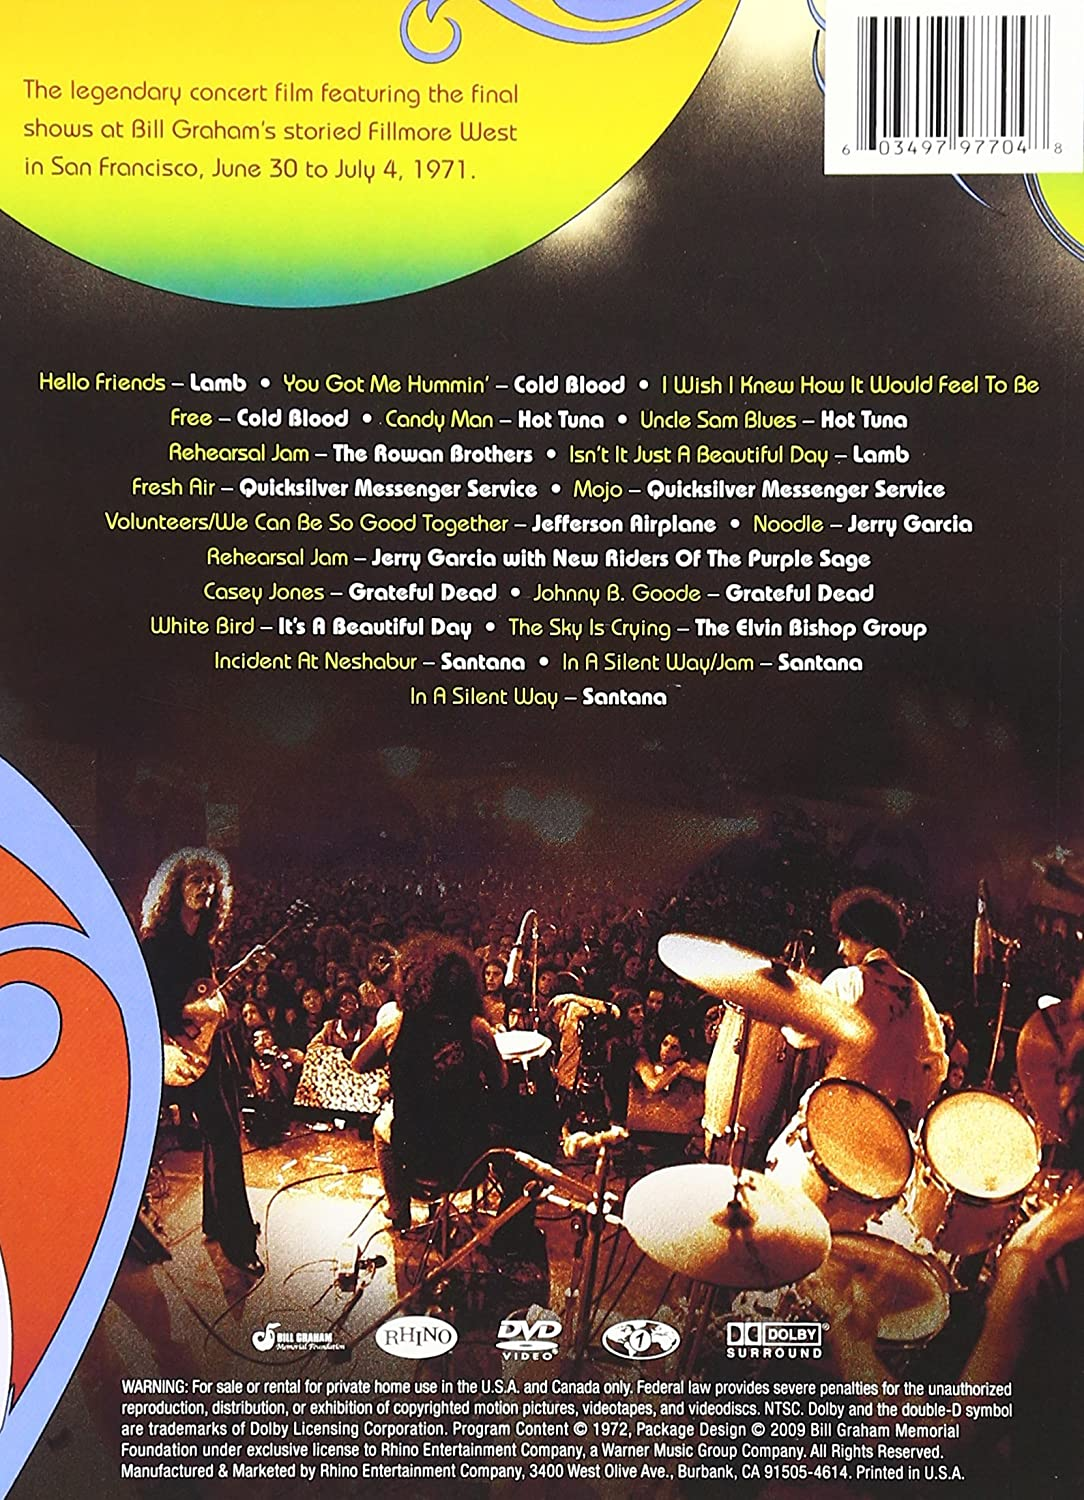 Amazon.com: Last Days of the Fillmore: Various Artists, Various: Movies & TV